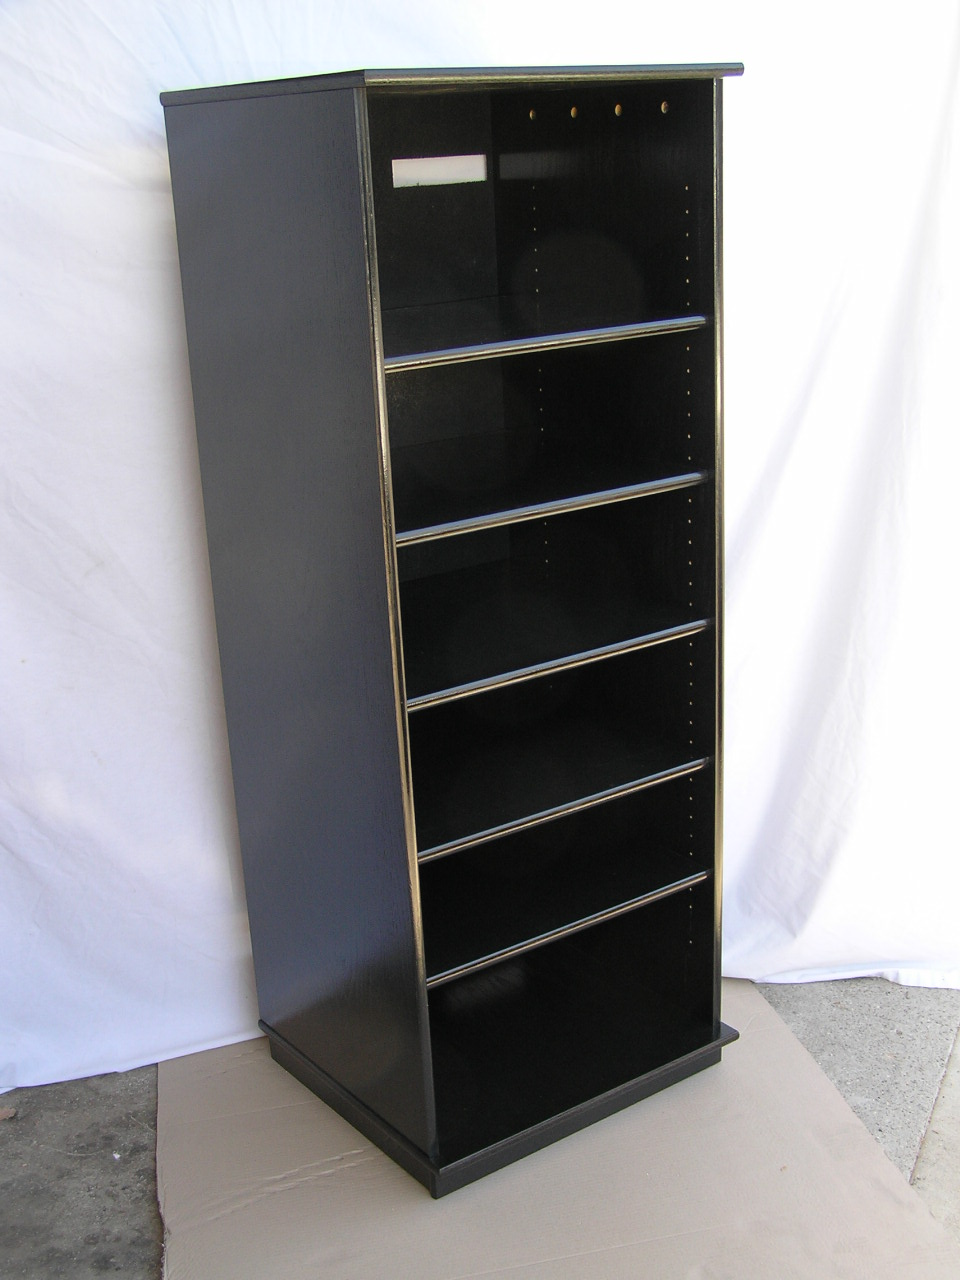 ... , Enetertainment Centers, DVD cabinet and Bookcases by DecibelDesigns